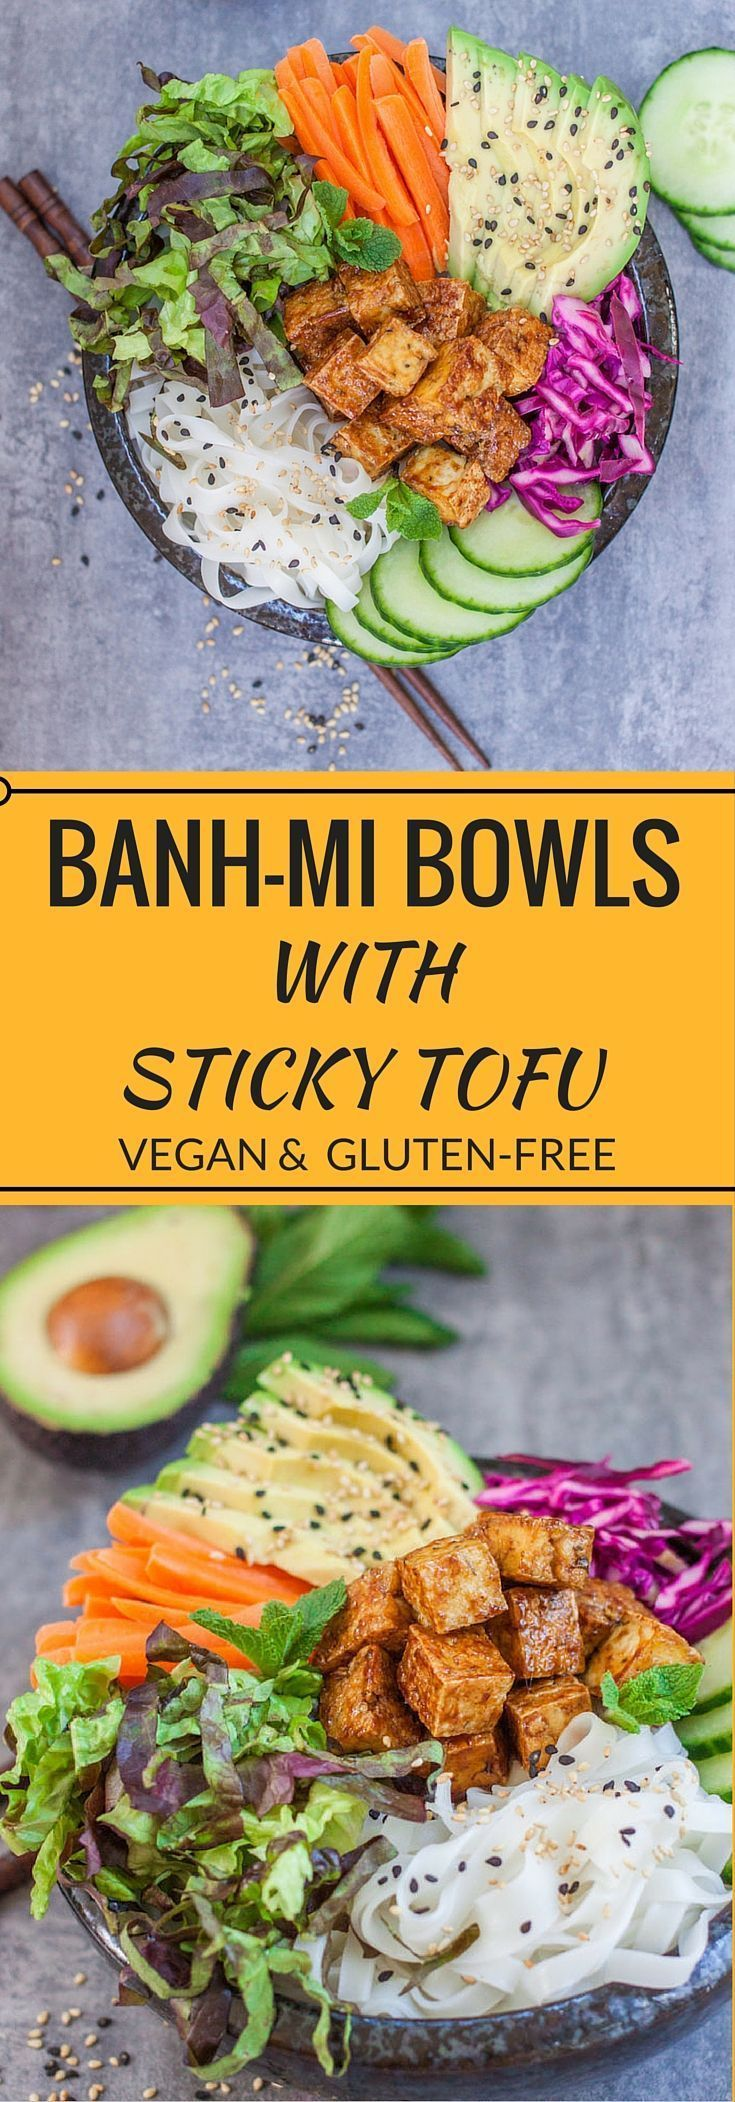 These Bank-Mi bowls with sticky tofu are a take on the traditional Vietnamese…